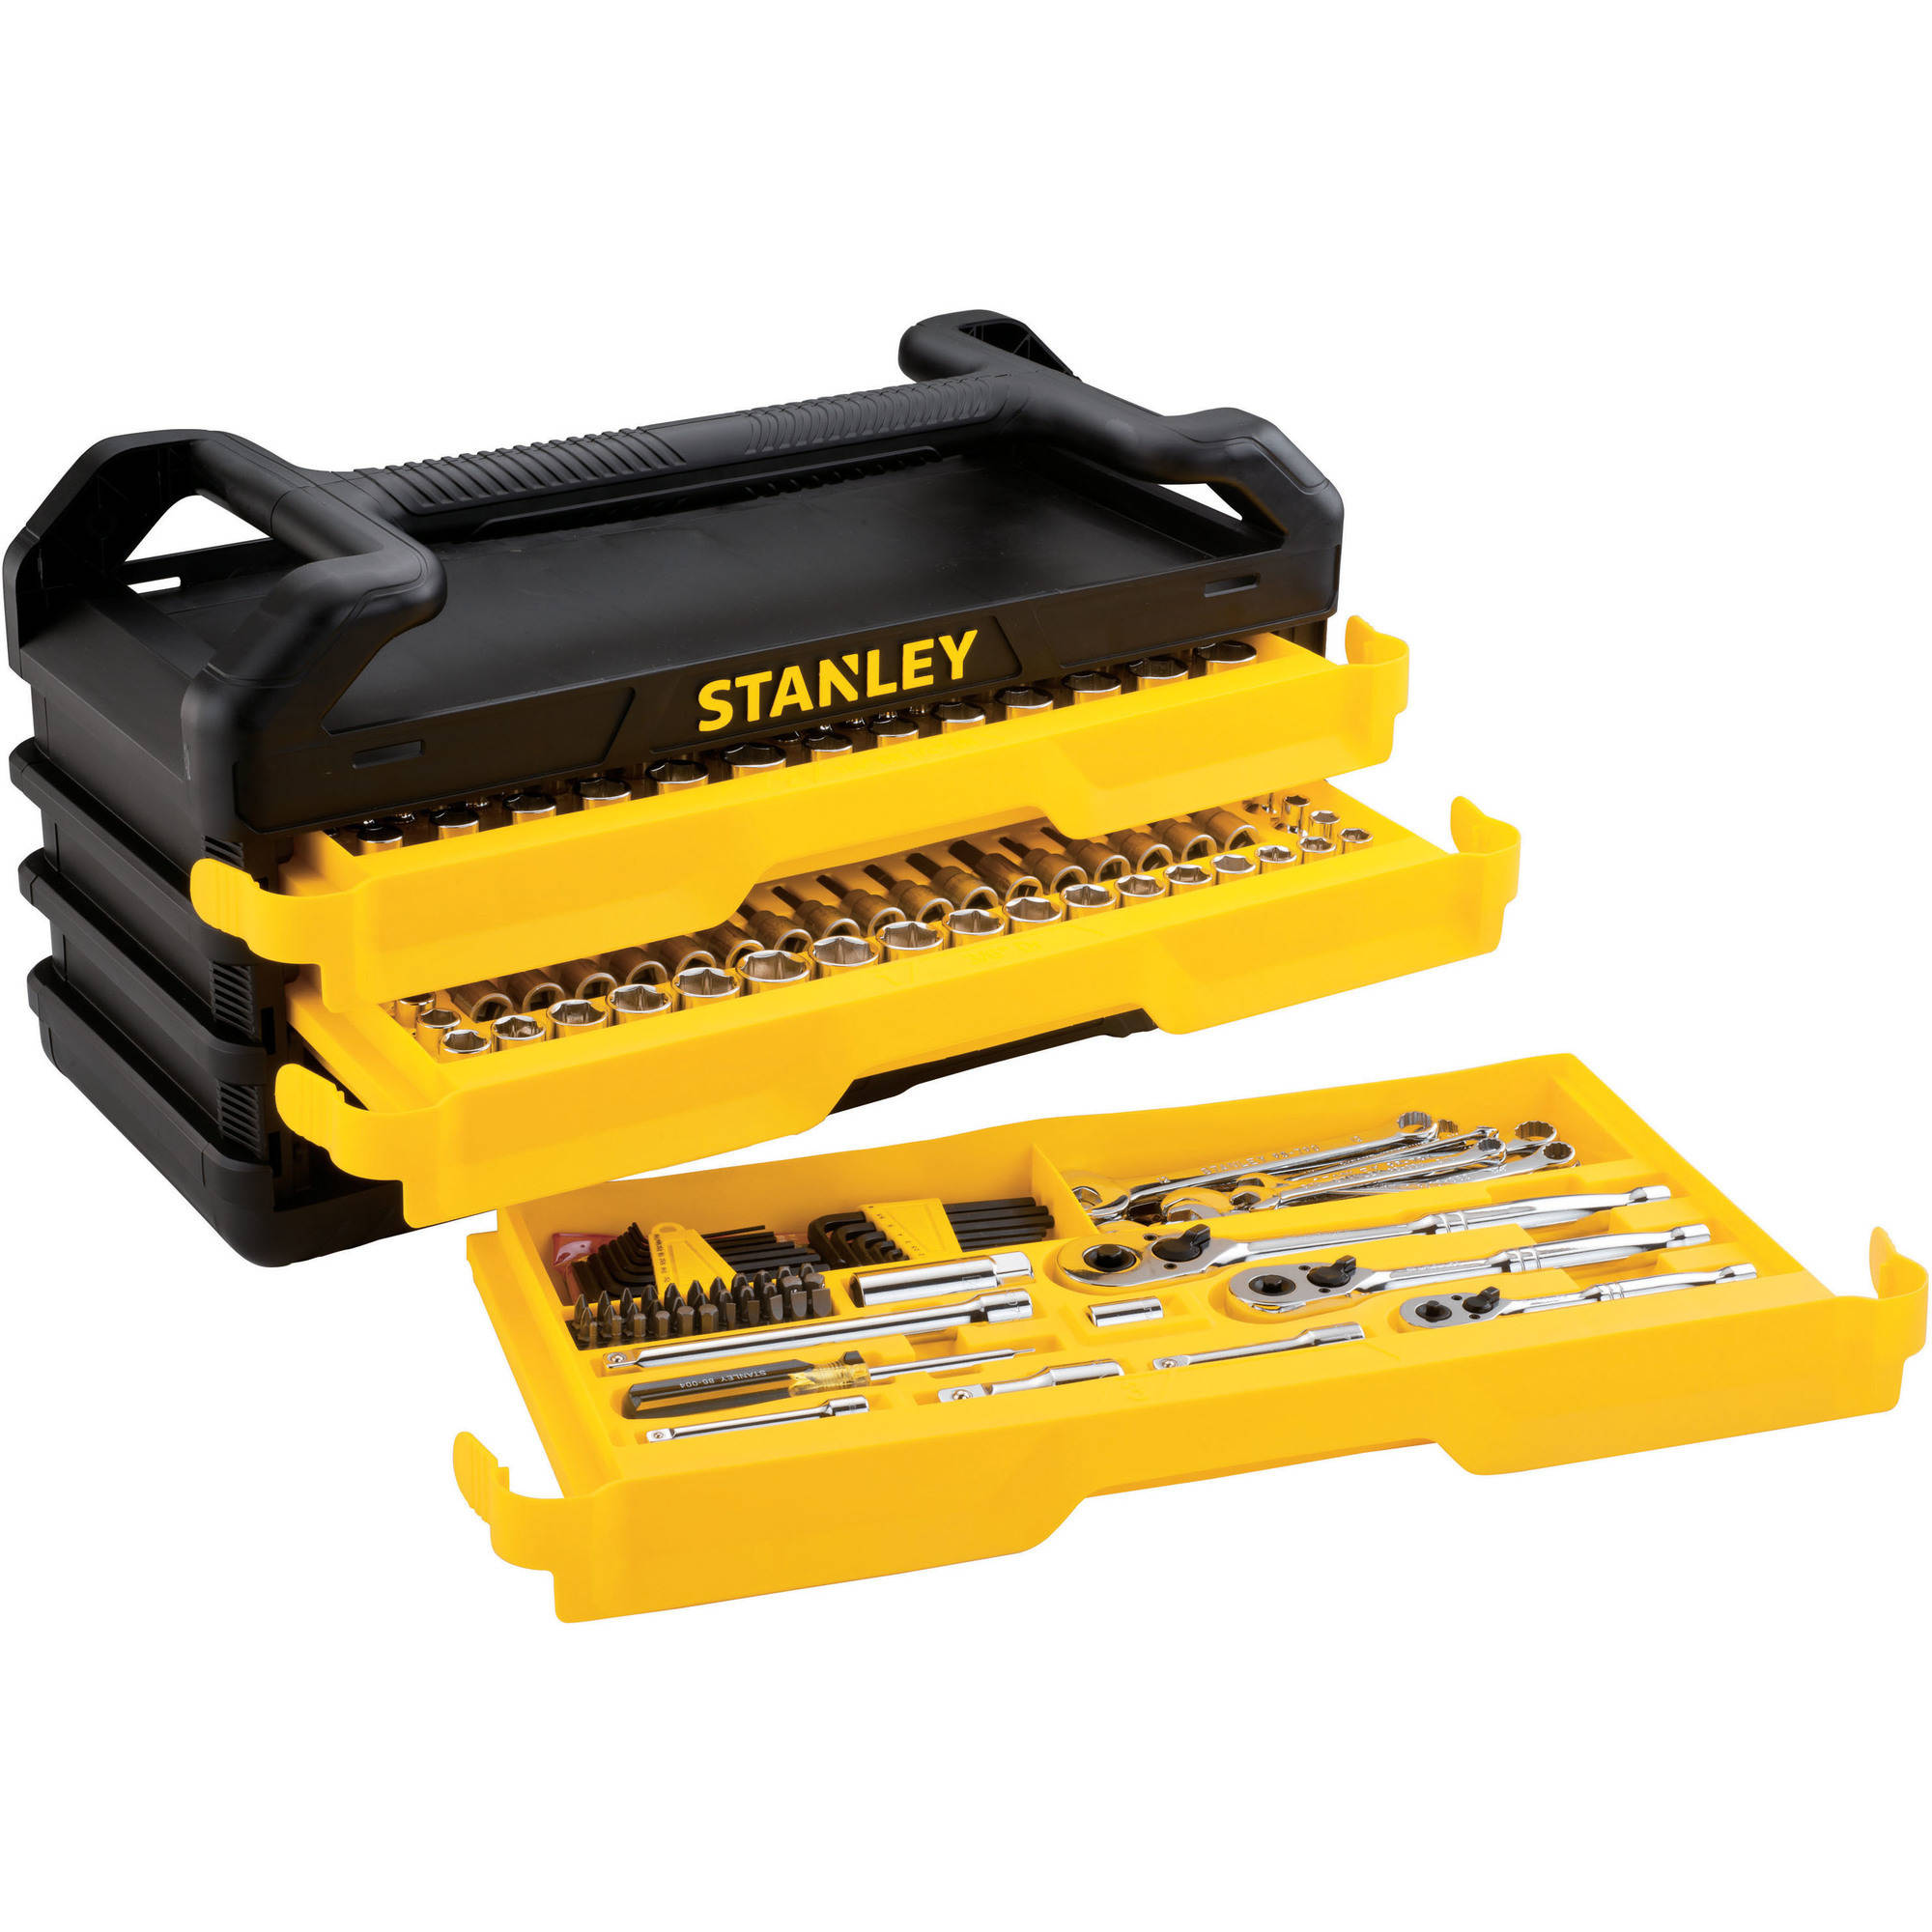 STANLEY STMT80548 Full Polish 235 Piece Mechanics Tool Set with 3-Drawer Chest